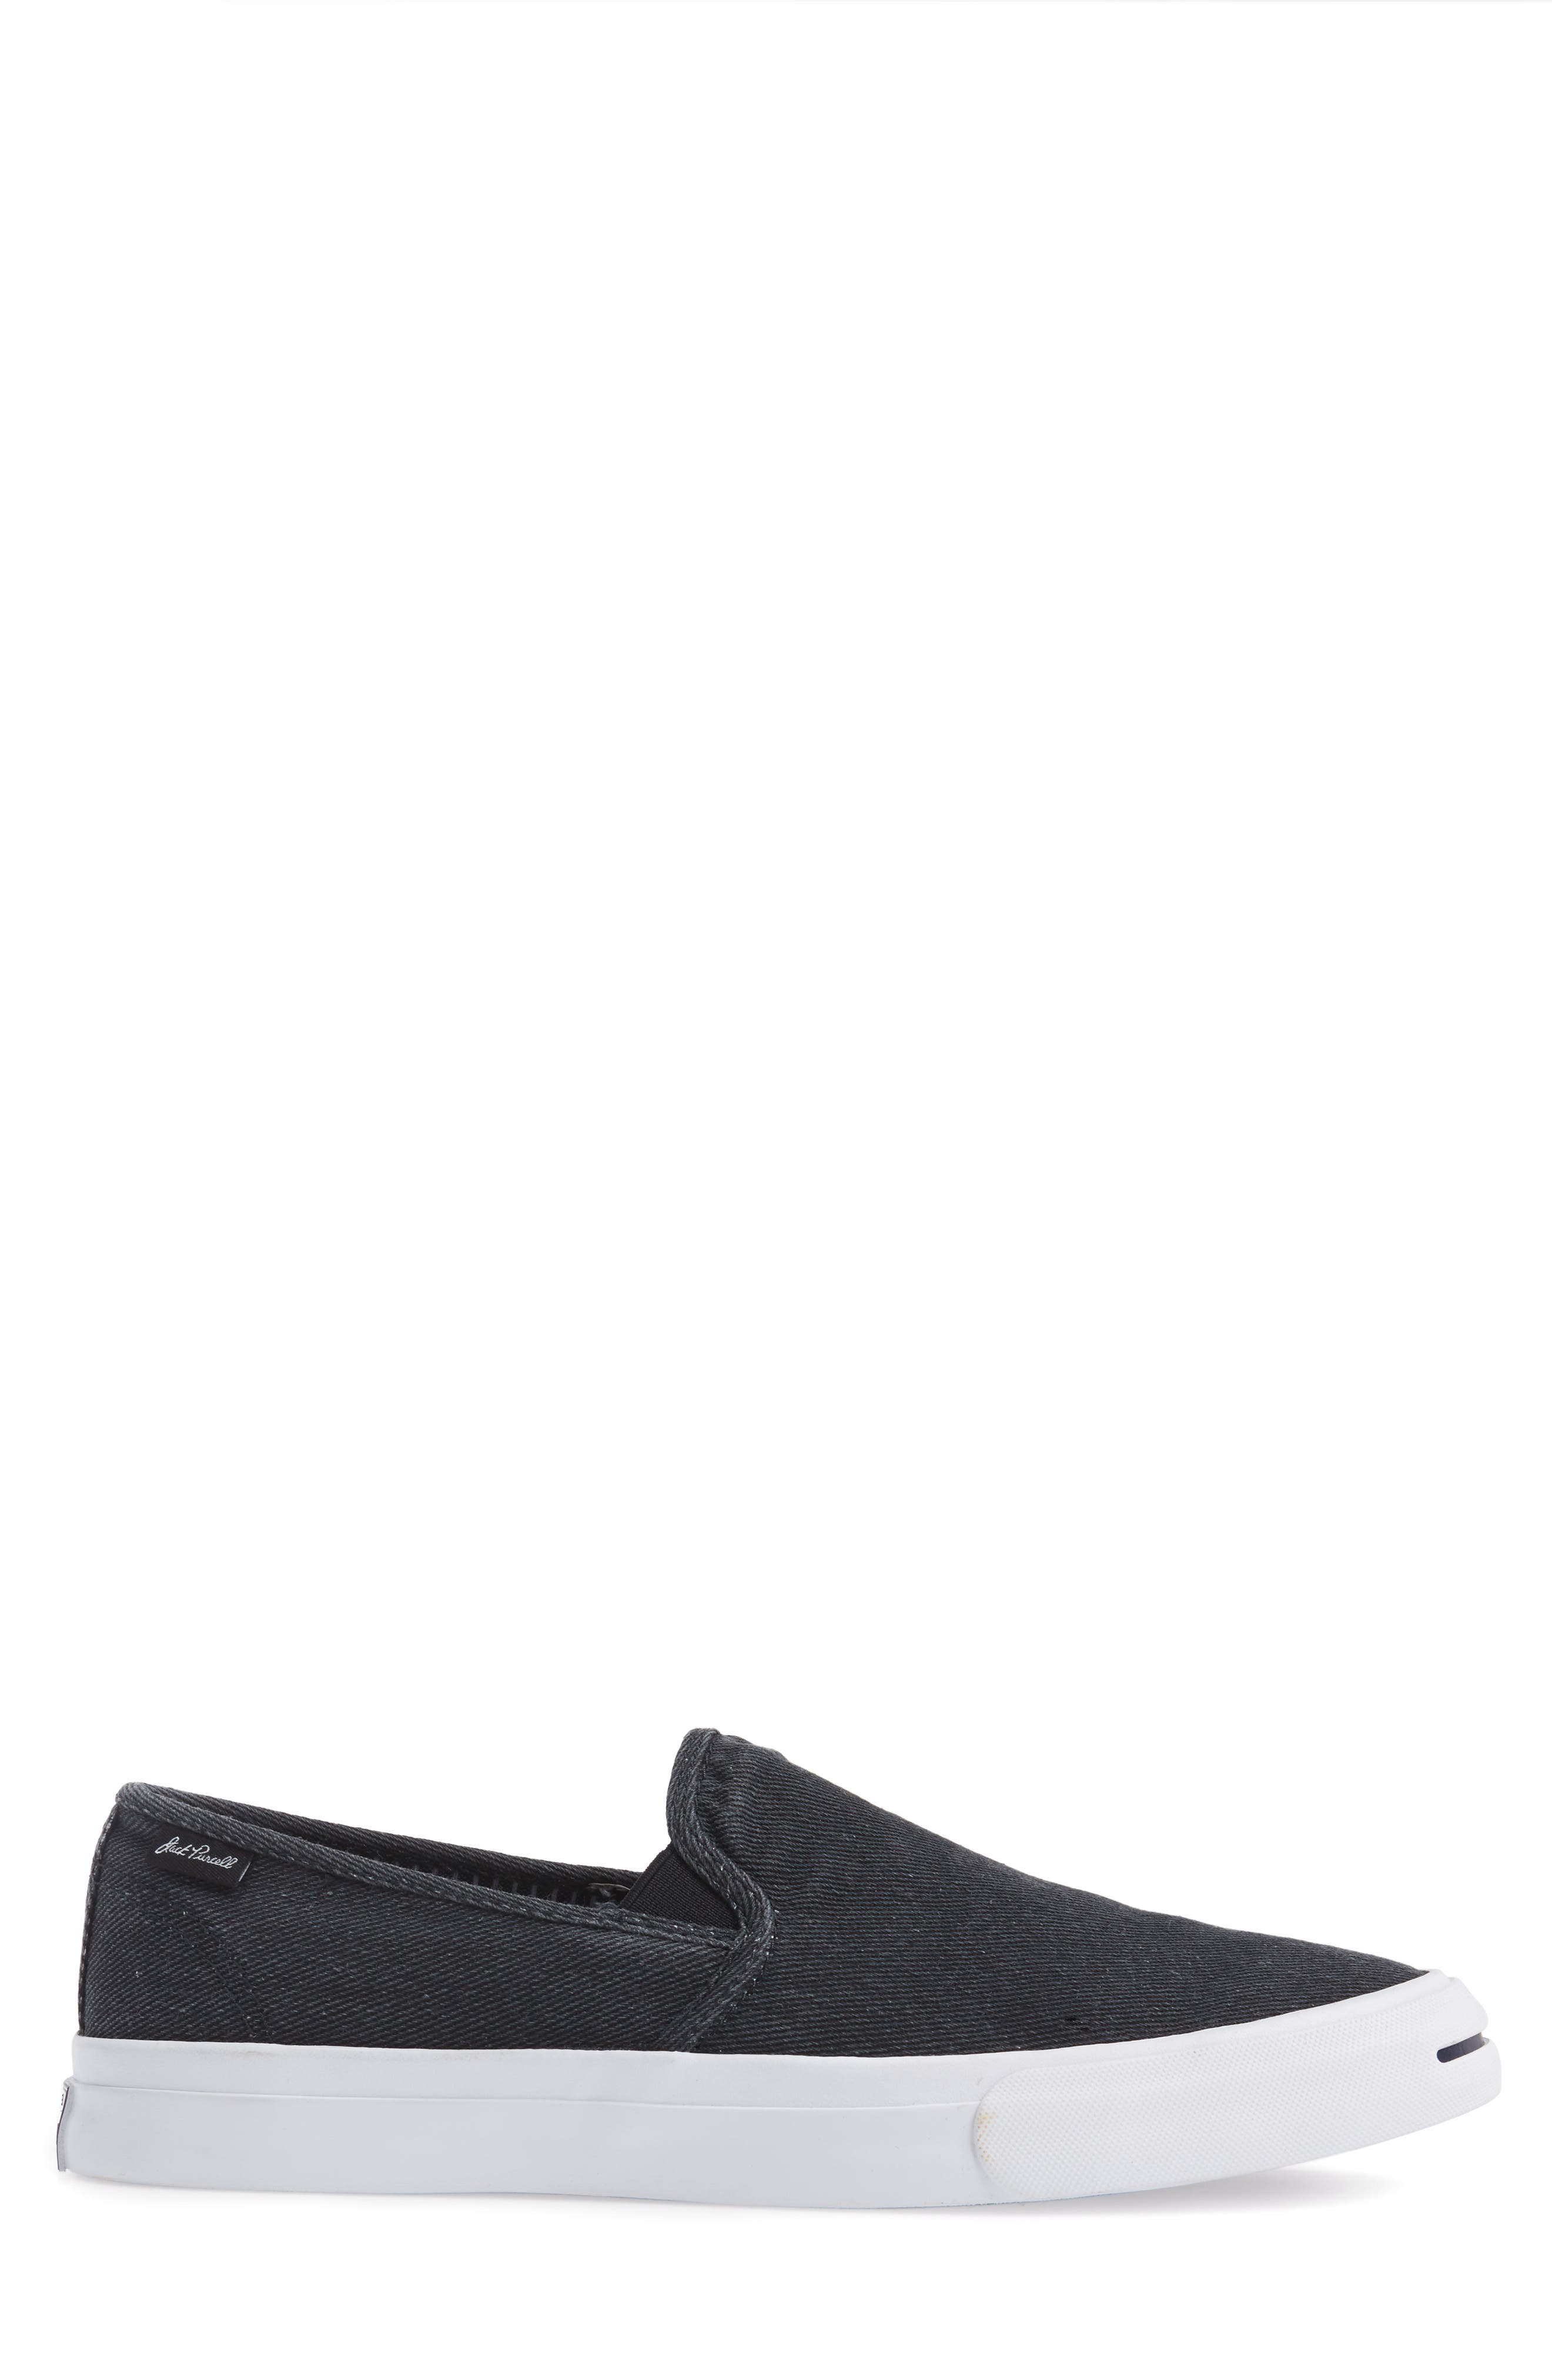 Jack Purcell II Slip-On,                             Alternate thumbnail 11, color,